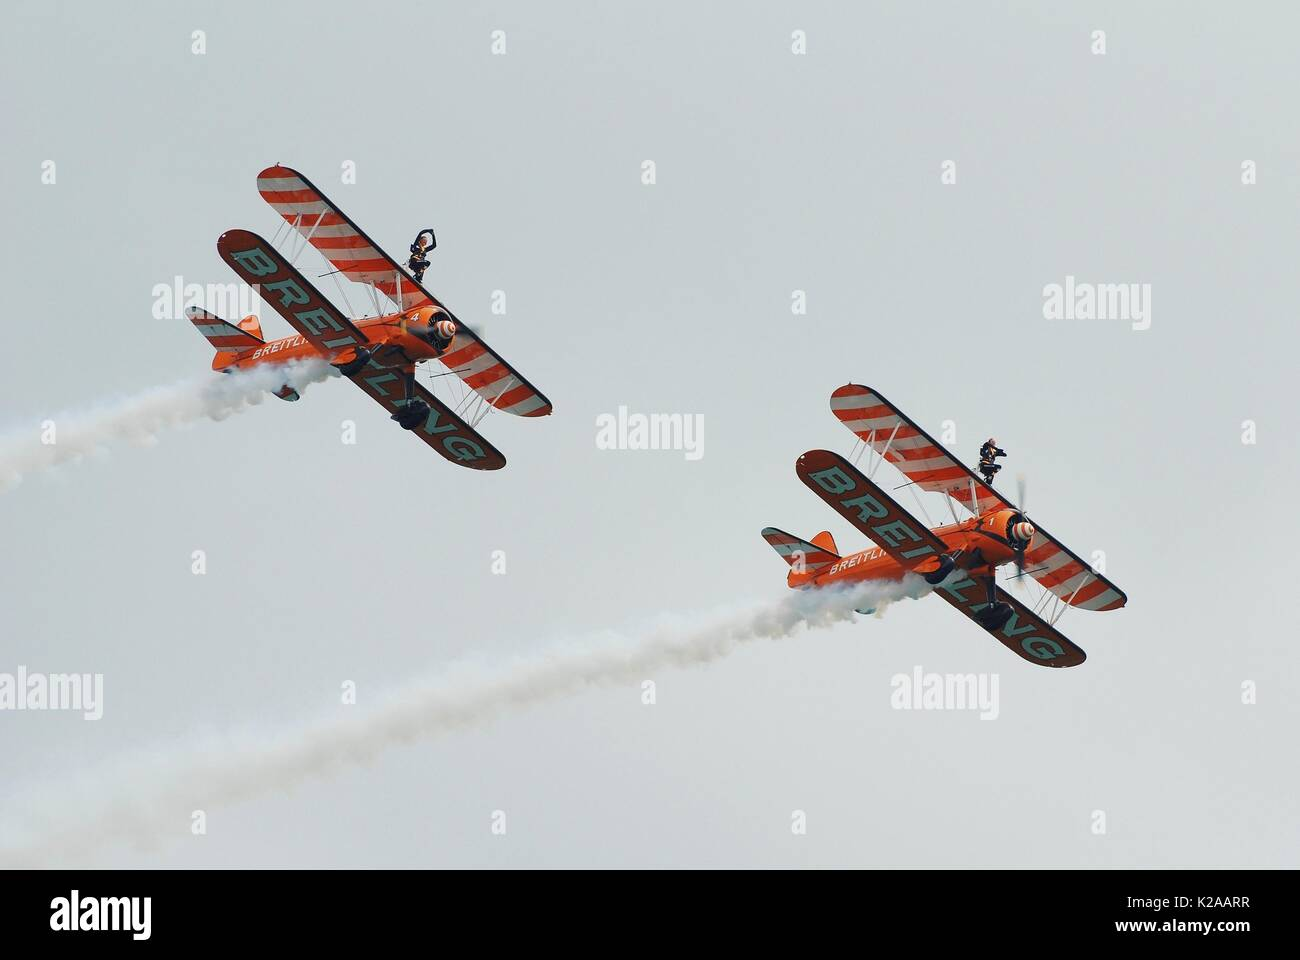 The Breitling Wing Walking display team perform at the Airbourne airshow at Eastbourne in East Sussex, England on August 15, 2013. - Stock Image